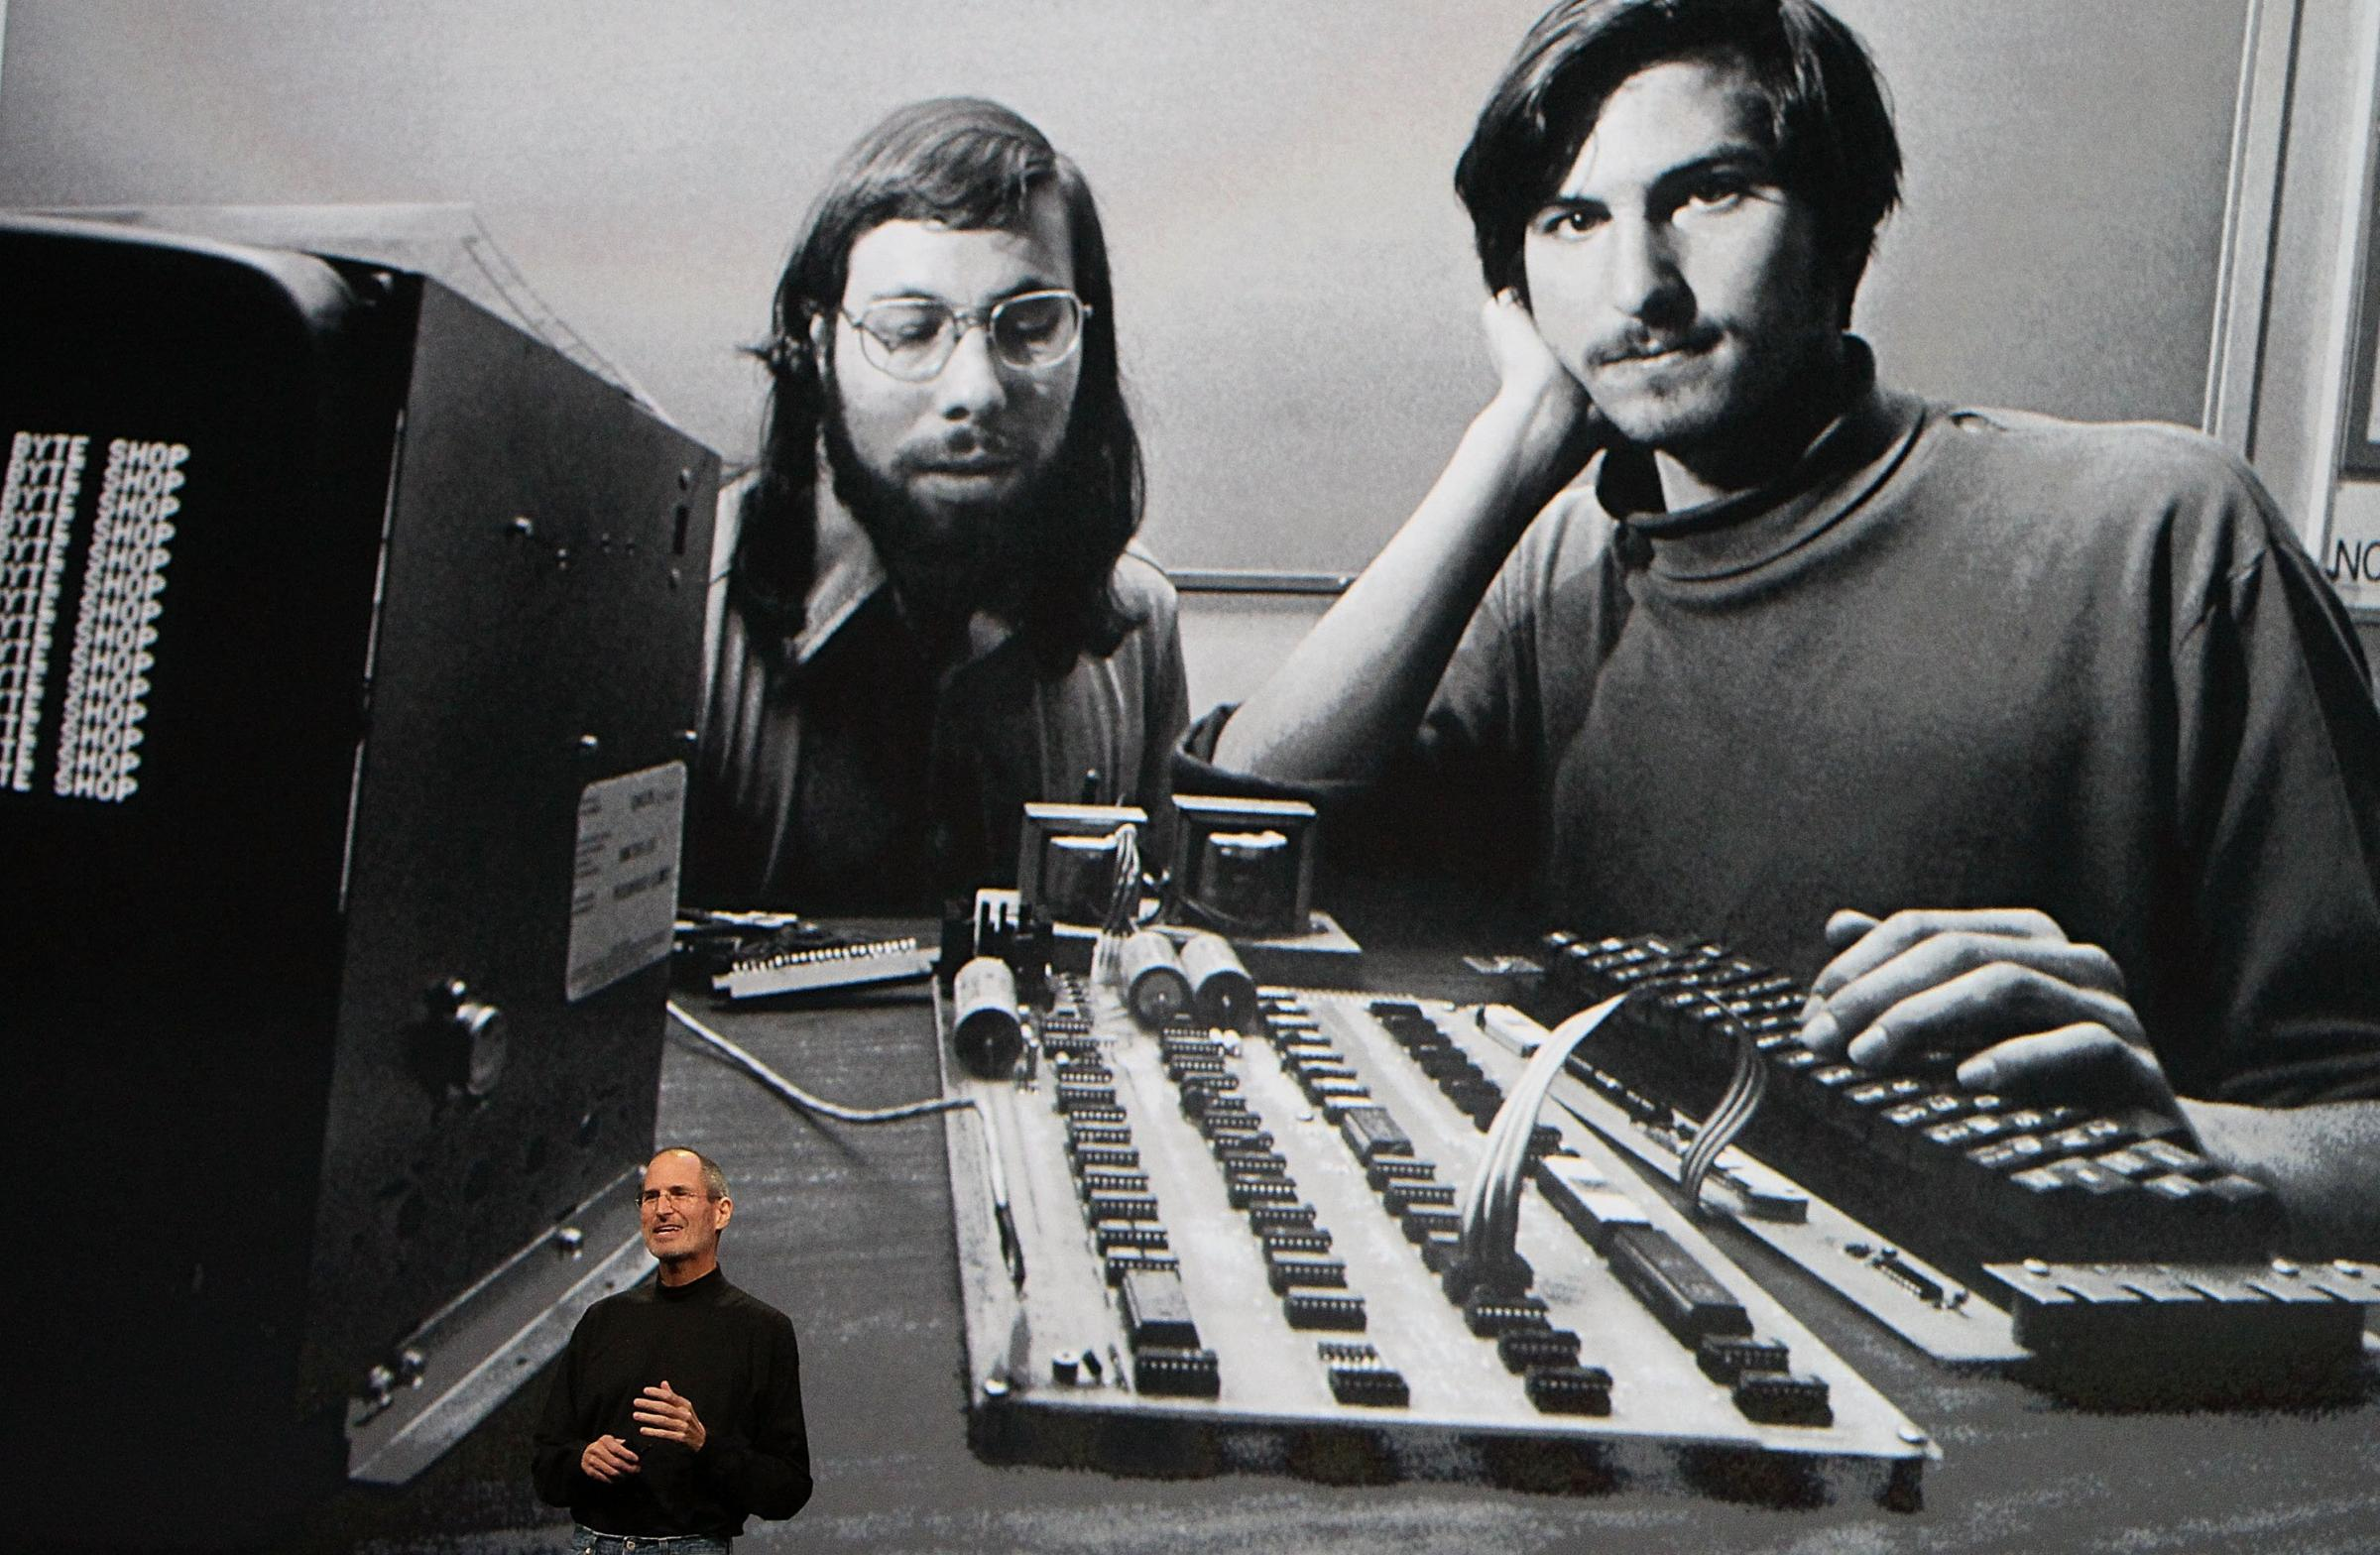 Steve Jobs presented the iPad to the world in 2010; currently 25 million are sold per month